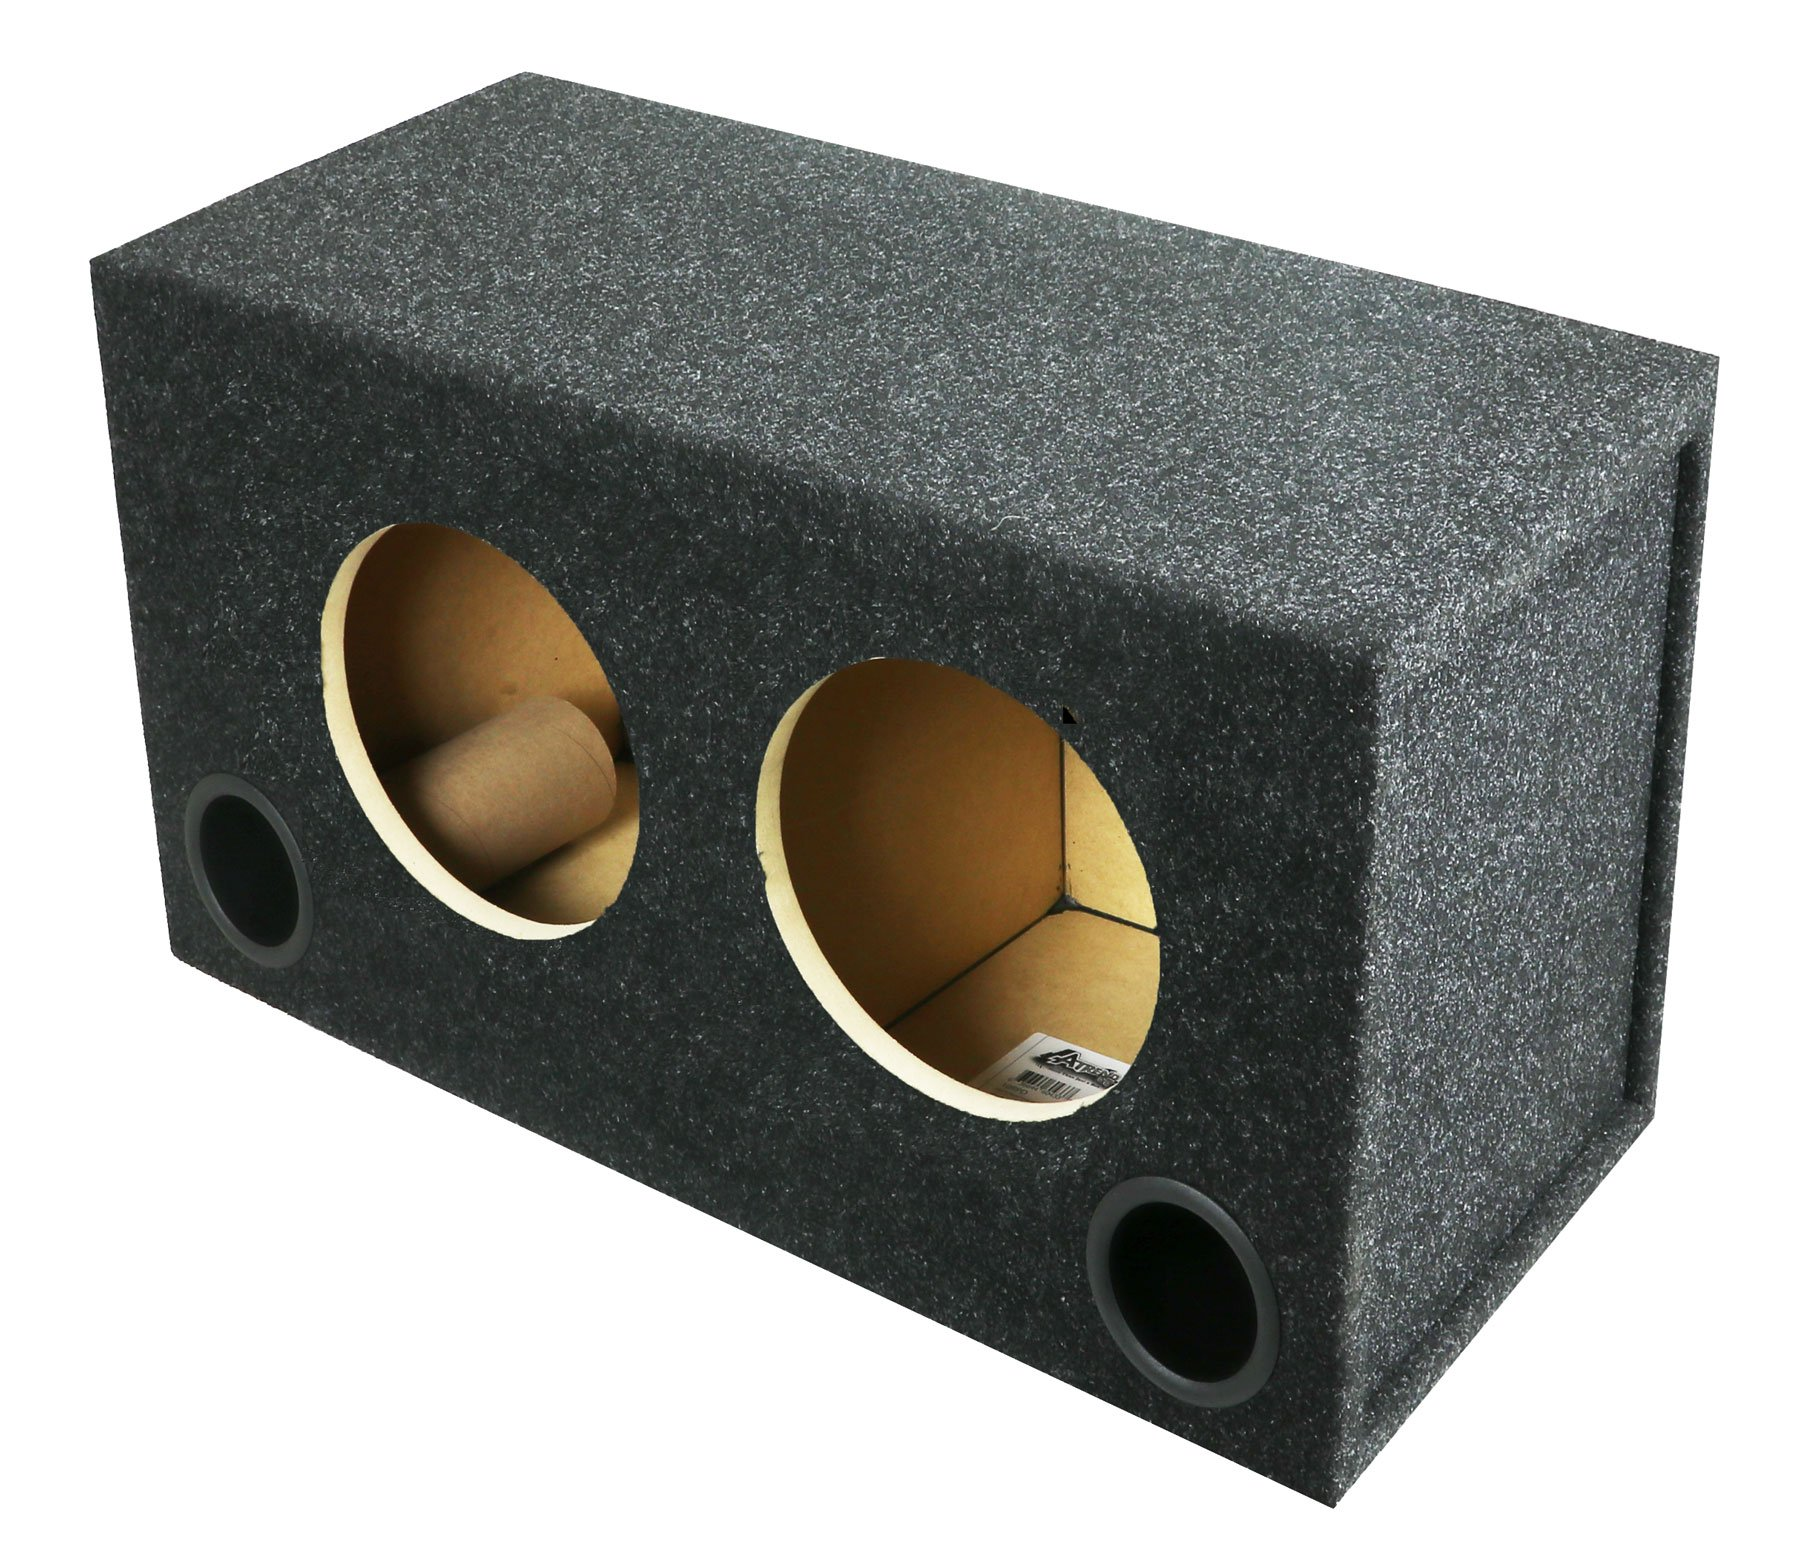 Dual Rockford Fosgate Model P2D4 & P3D4 8 Inch Subwoofer Enclosure by Atrend